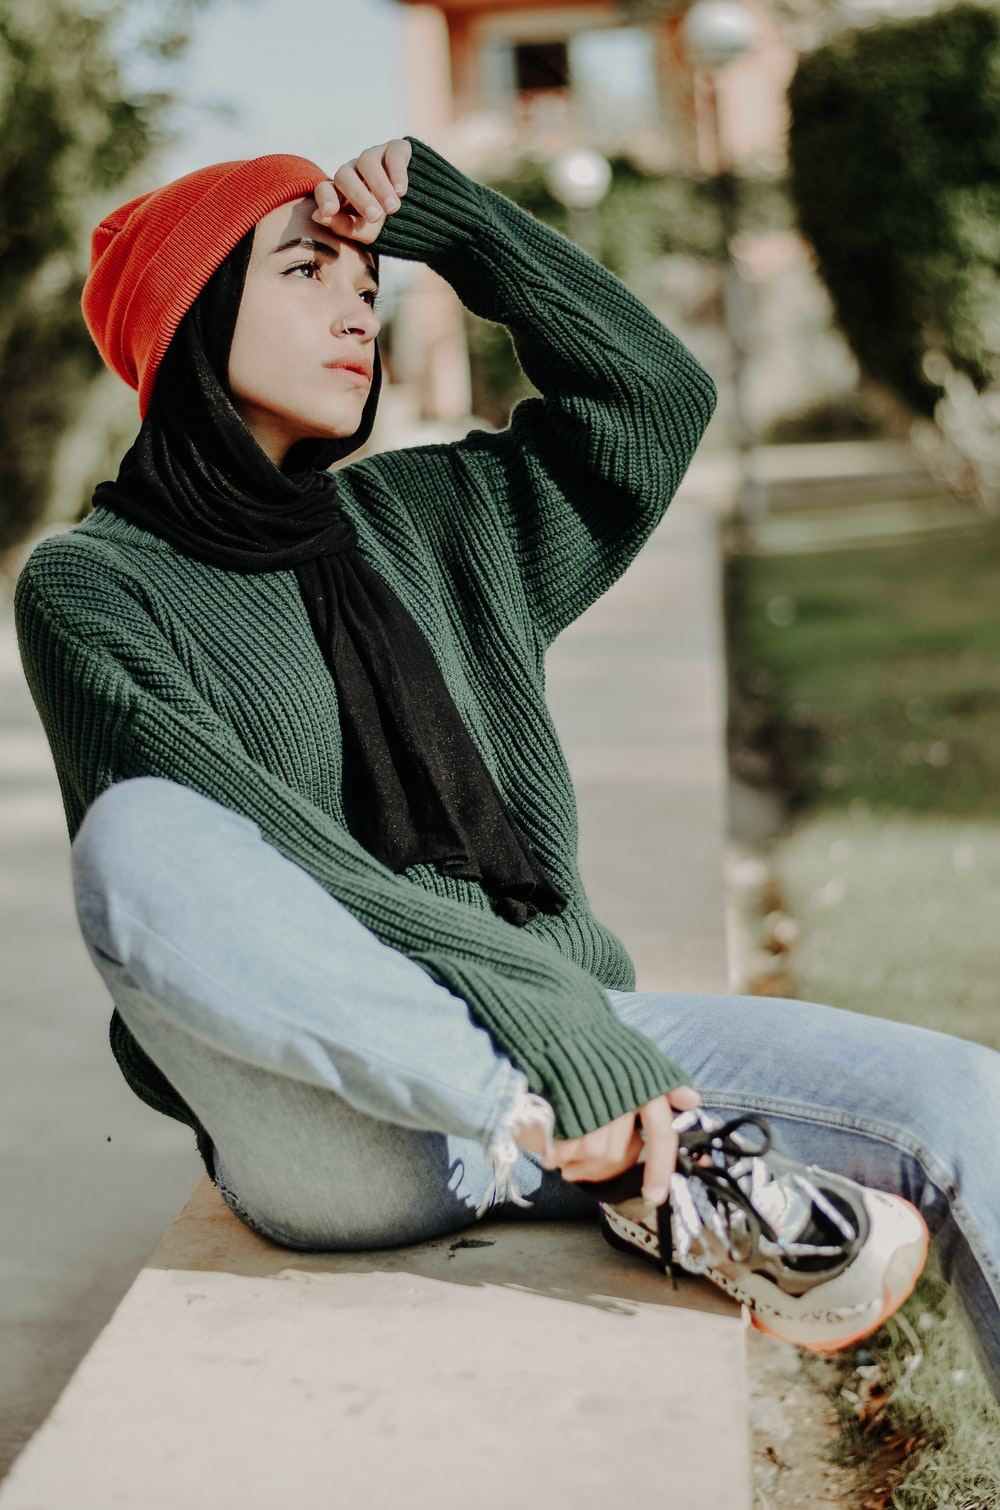 woman in green and black hijab and blue denim jeans sitting on concrete bench during daytime